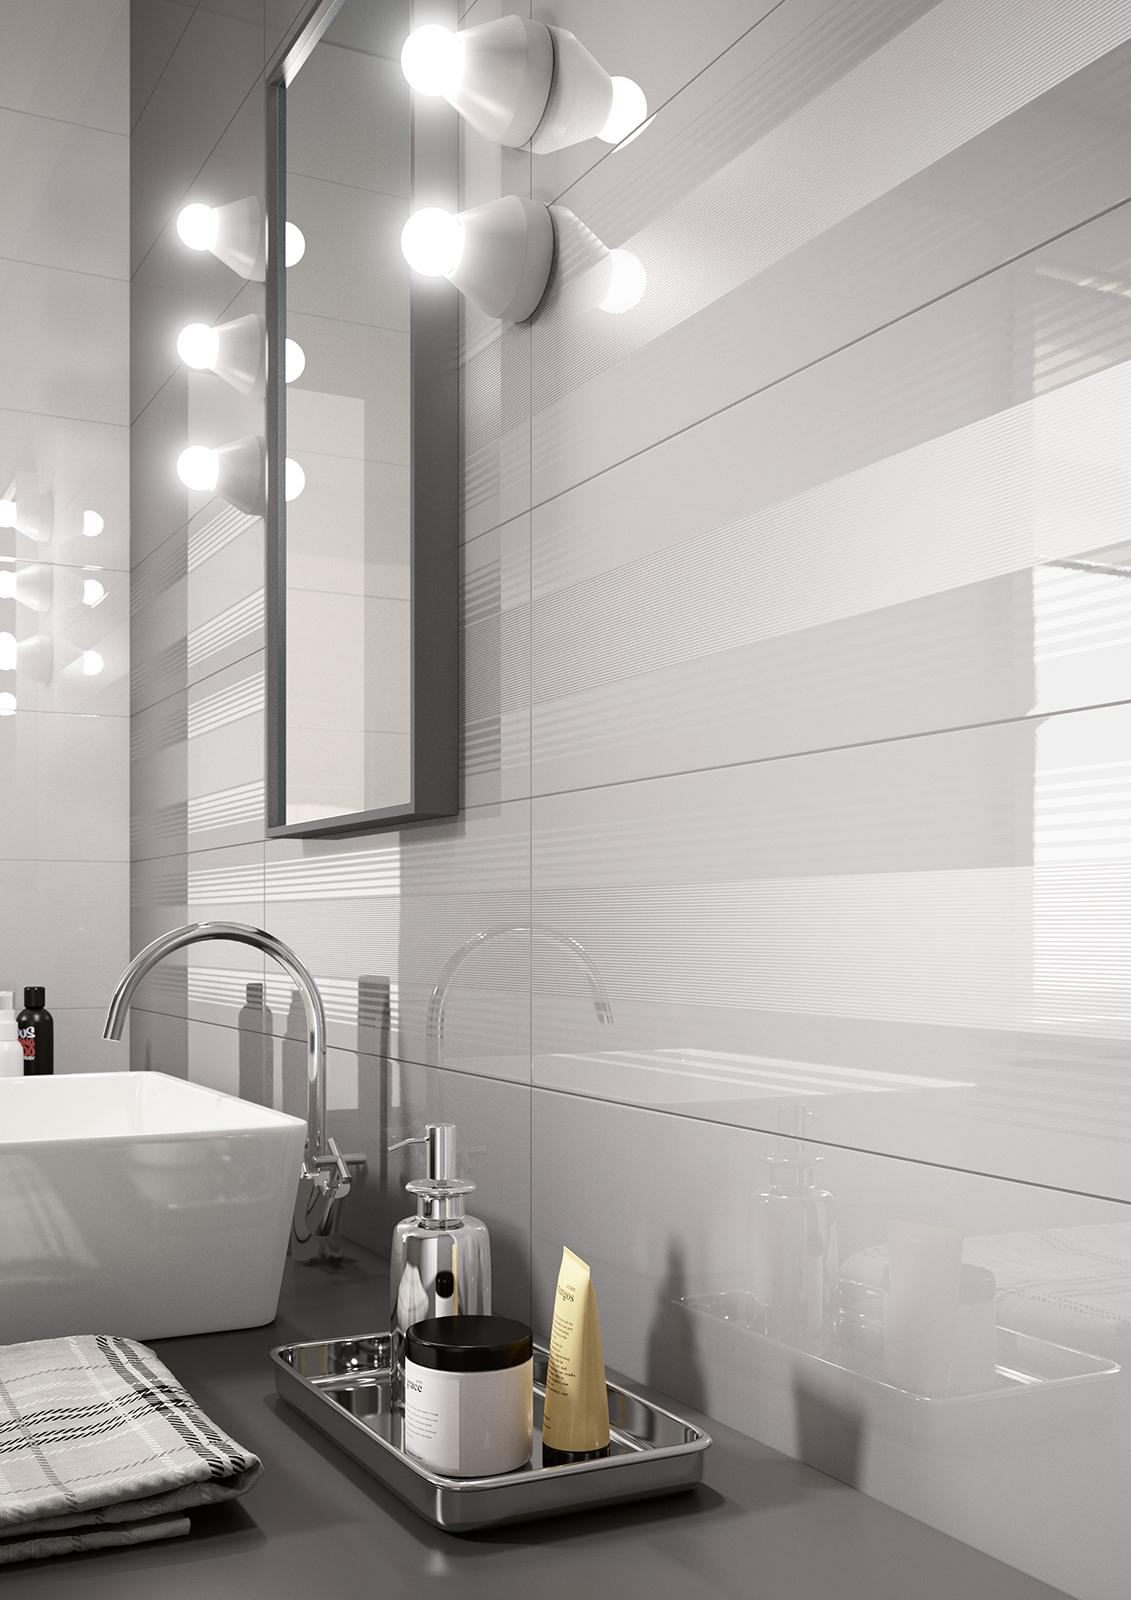 Colourline polished porcelain bathroom wall tiling marazzi colourline bathroom dailygadgetfo Choice Image